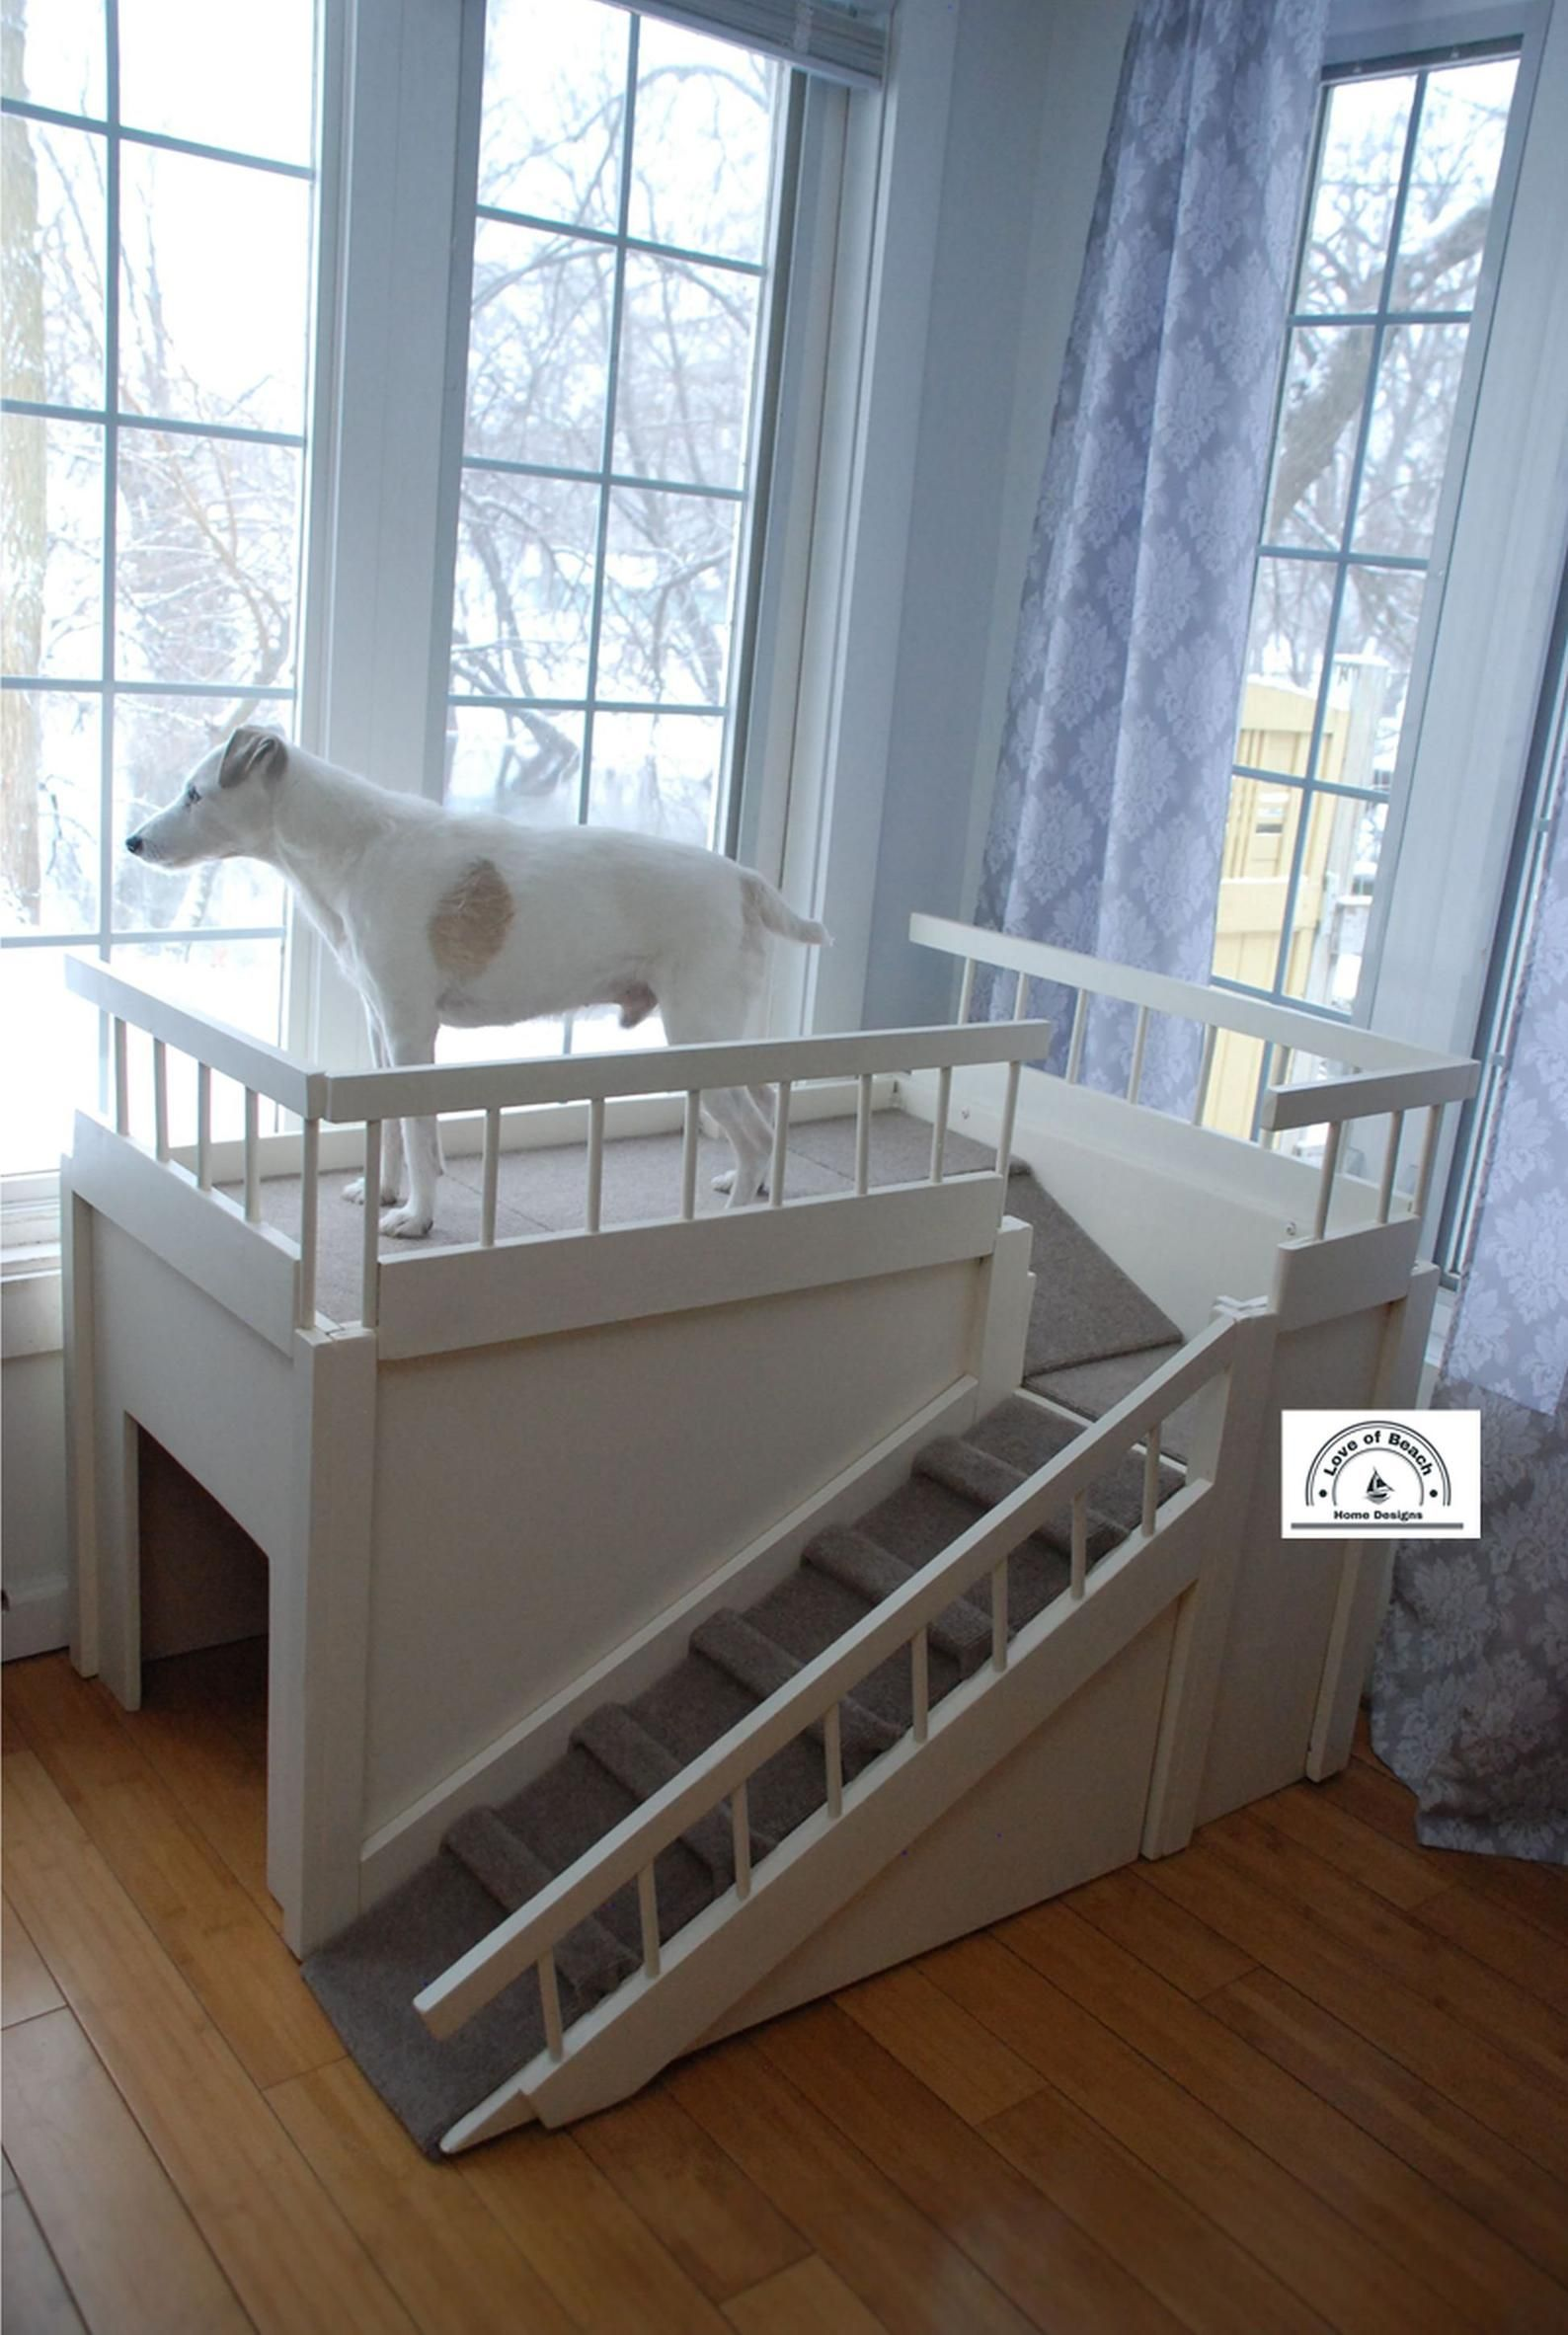 Wood Raised Dog Bed With Ramp And Dog House Elevated Dog Bed Image